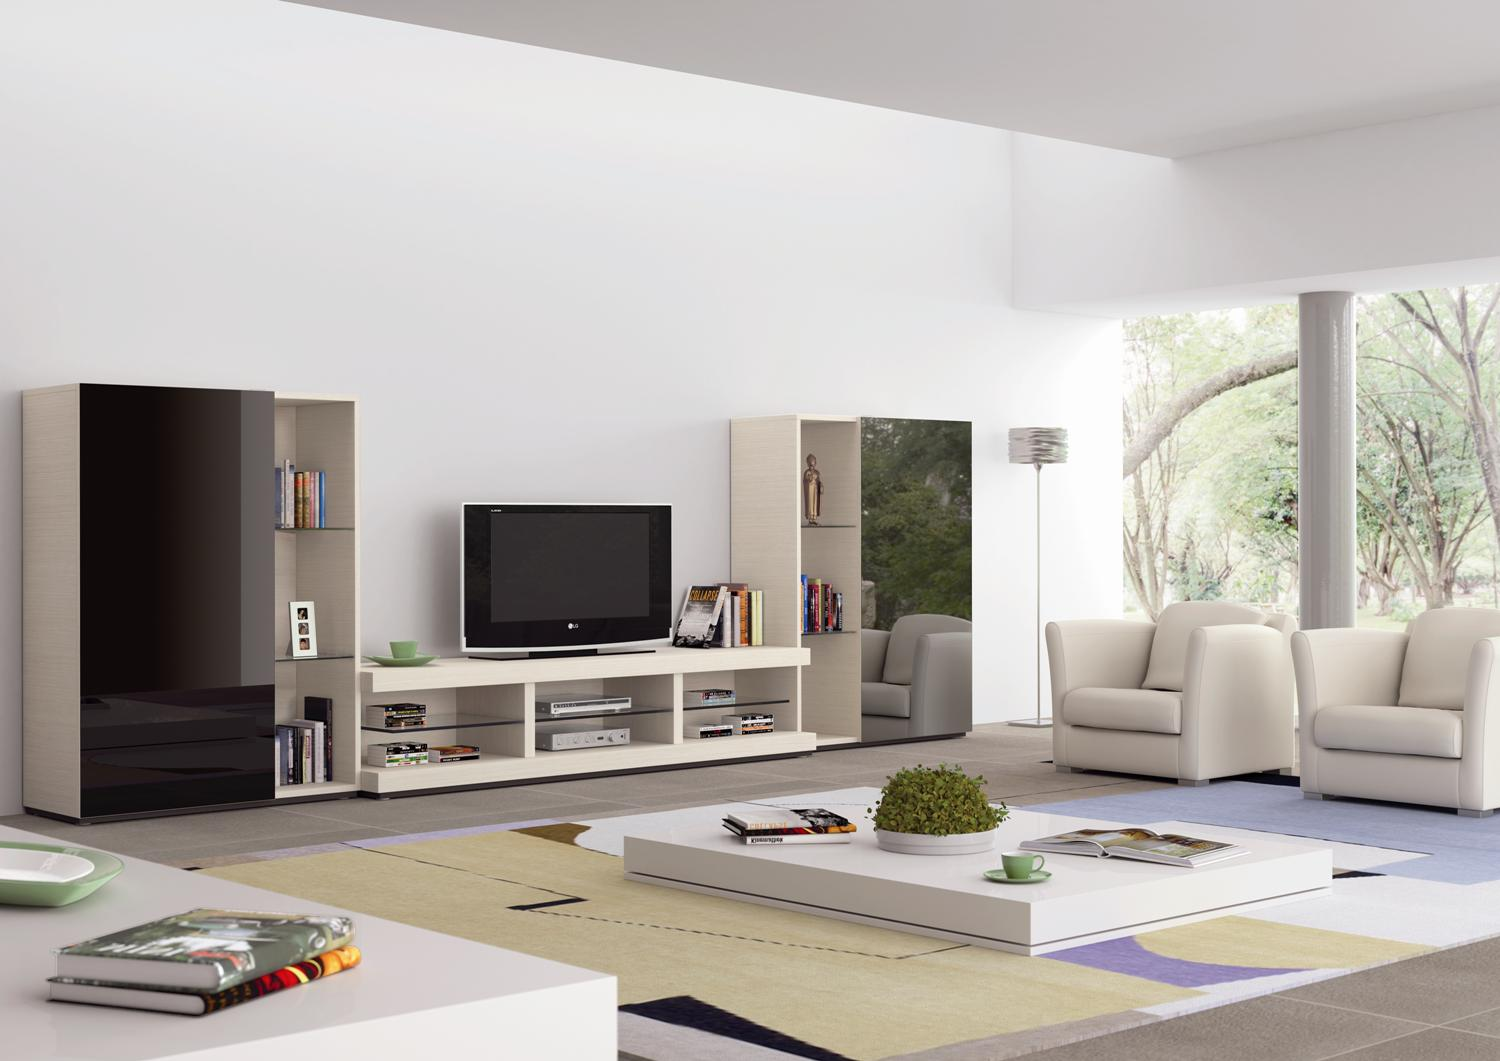 Muebles modernos ideas designs of home and garden for Muebles modernos living para tv